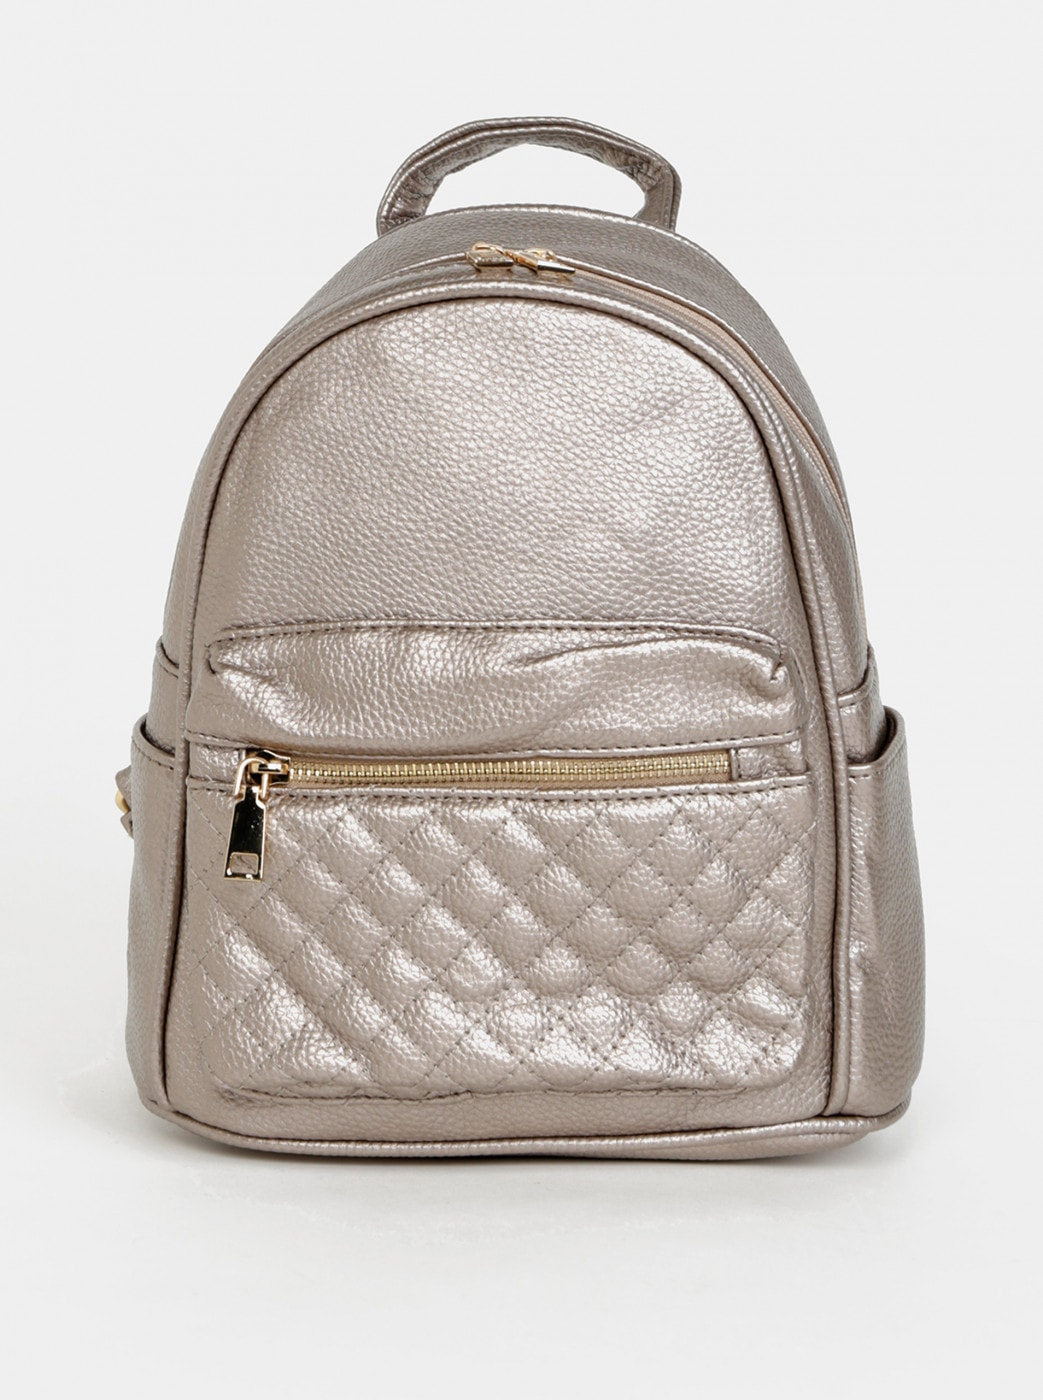 Beige women's backpack with metallic flares Haily ́s Celine